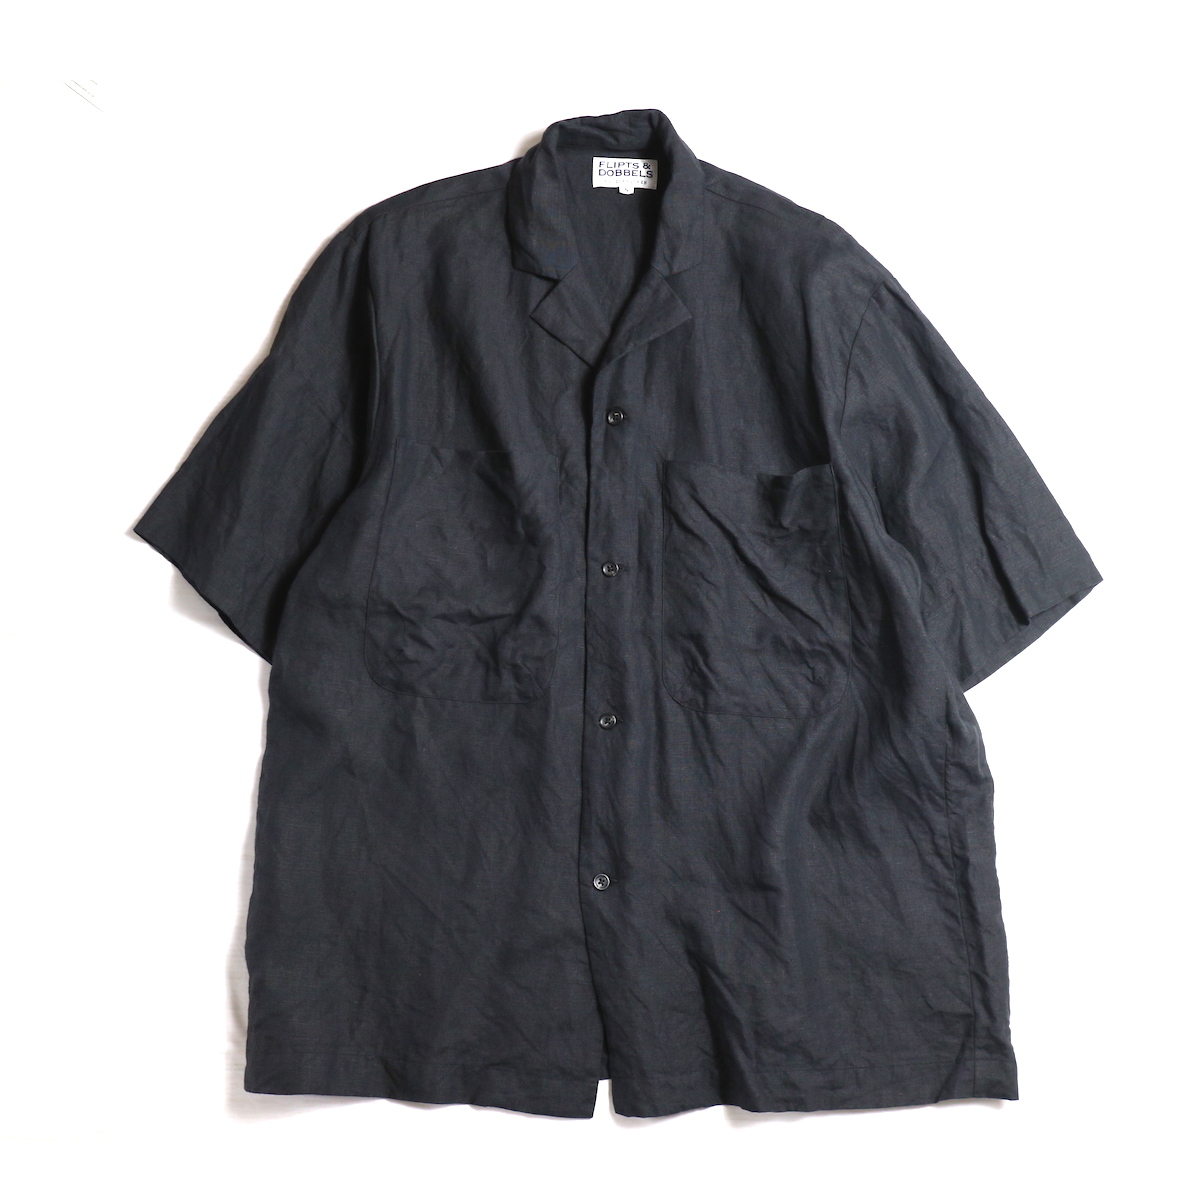 FLIPTS & DOBBELS /  Open S/S Shirts -Black